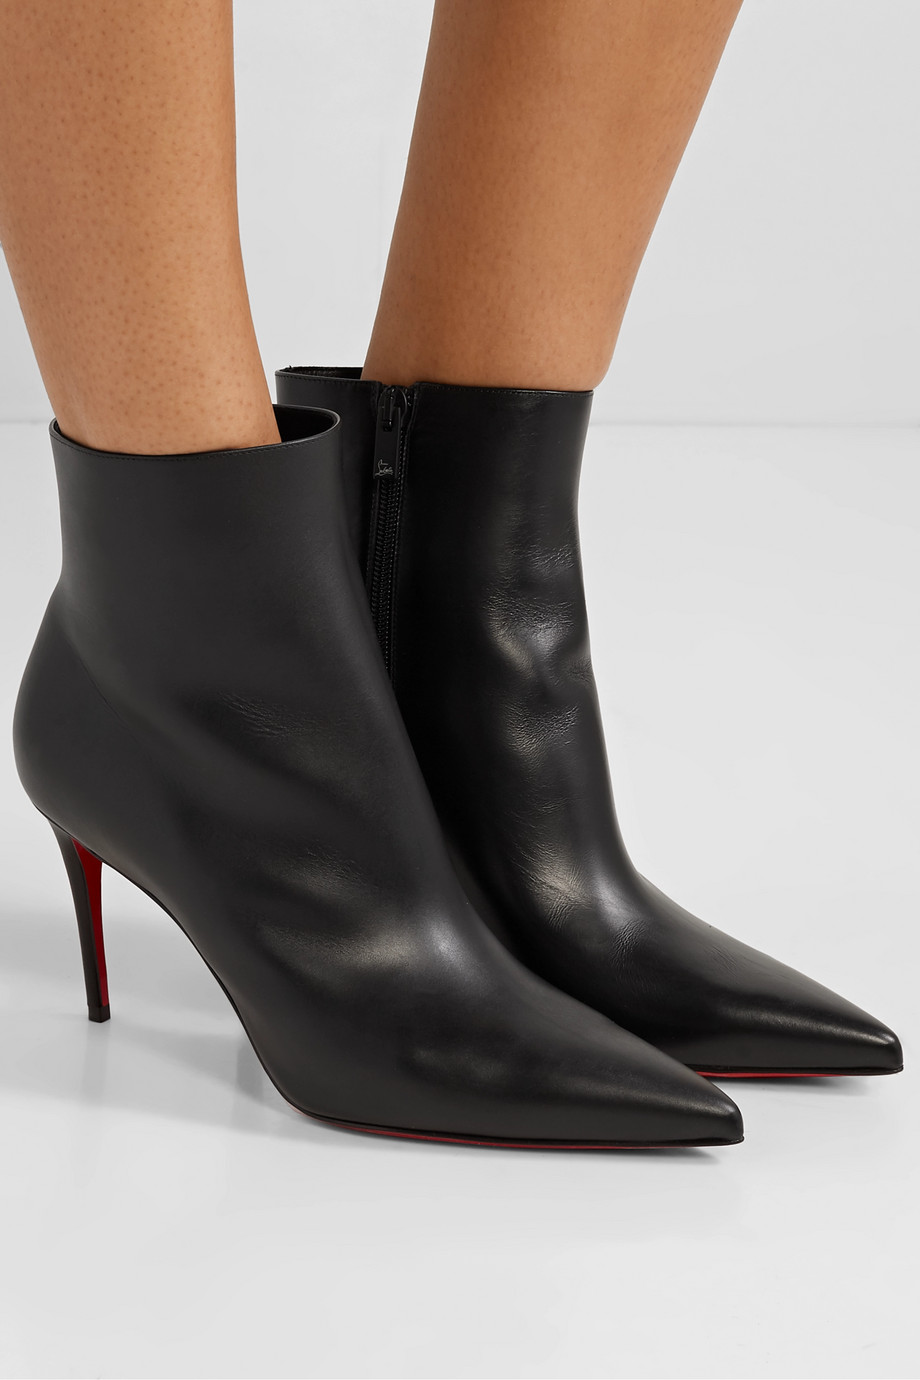 Christian Louboutin Bottines en cuir So Kate 85